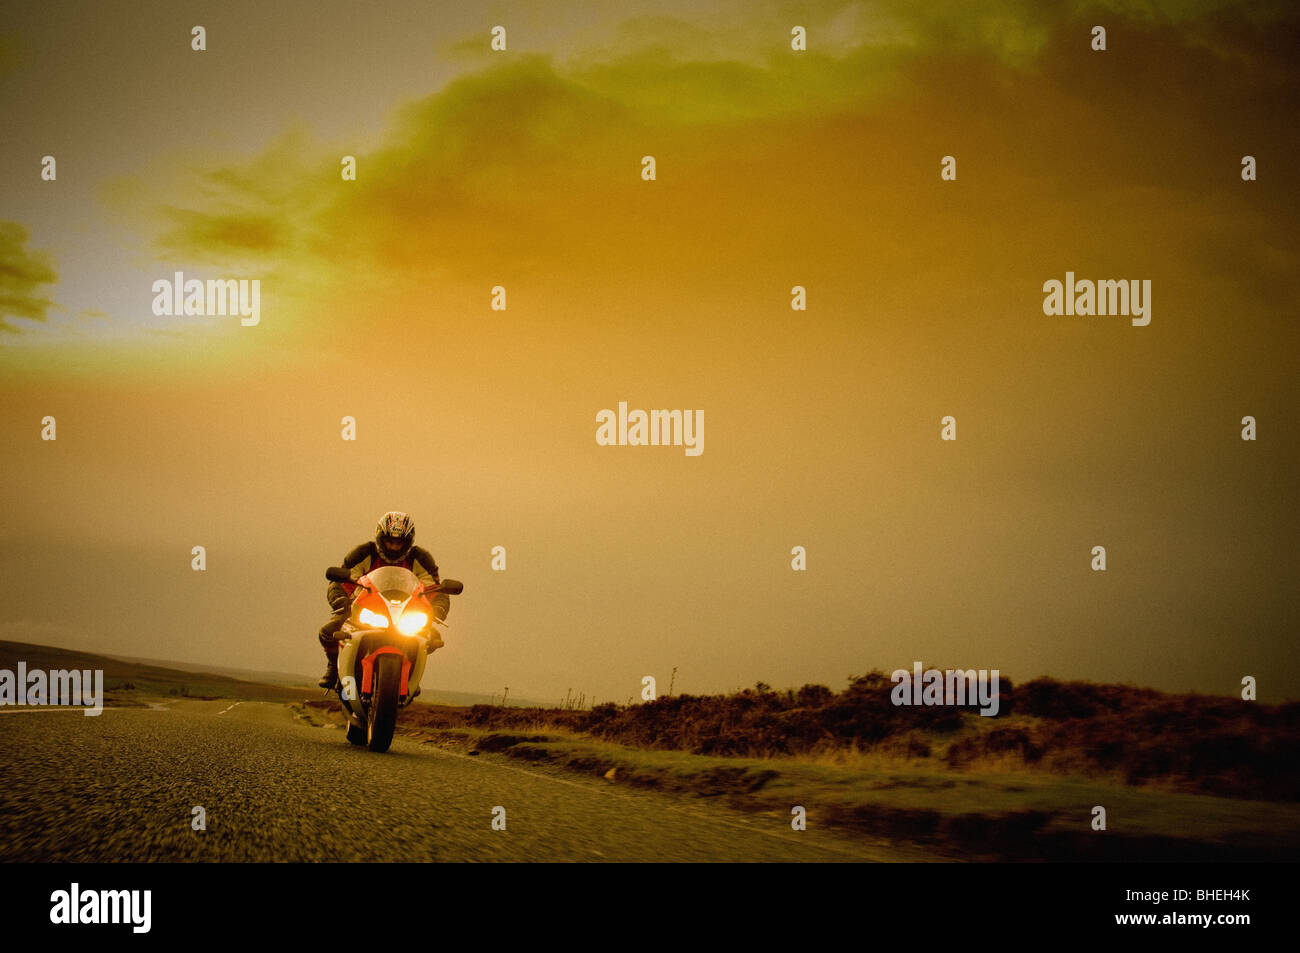 Front view of motorbike and rider on road in the North Yorkshire Moors, UK - Stock Image